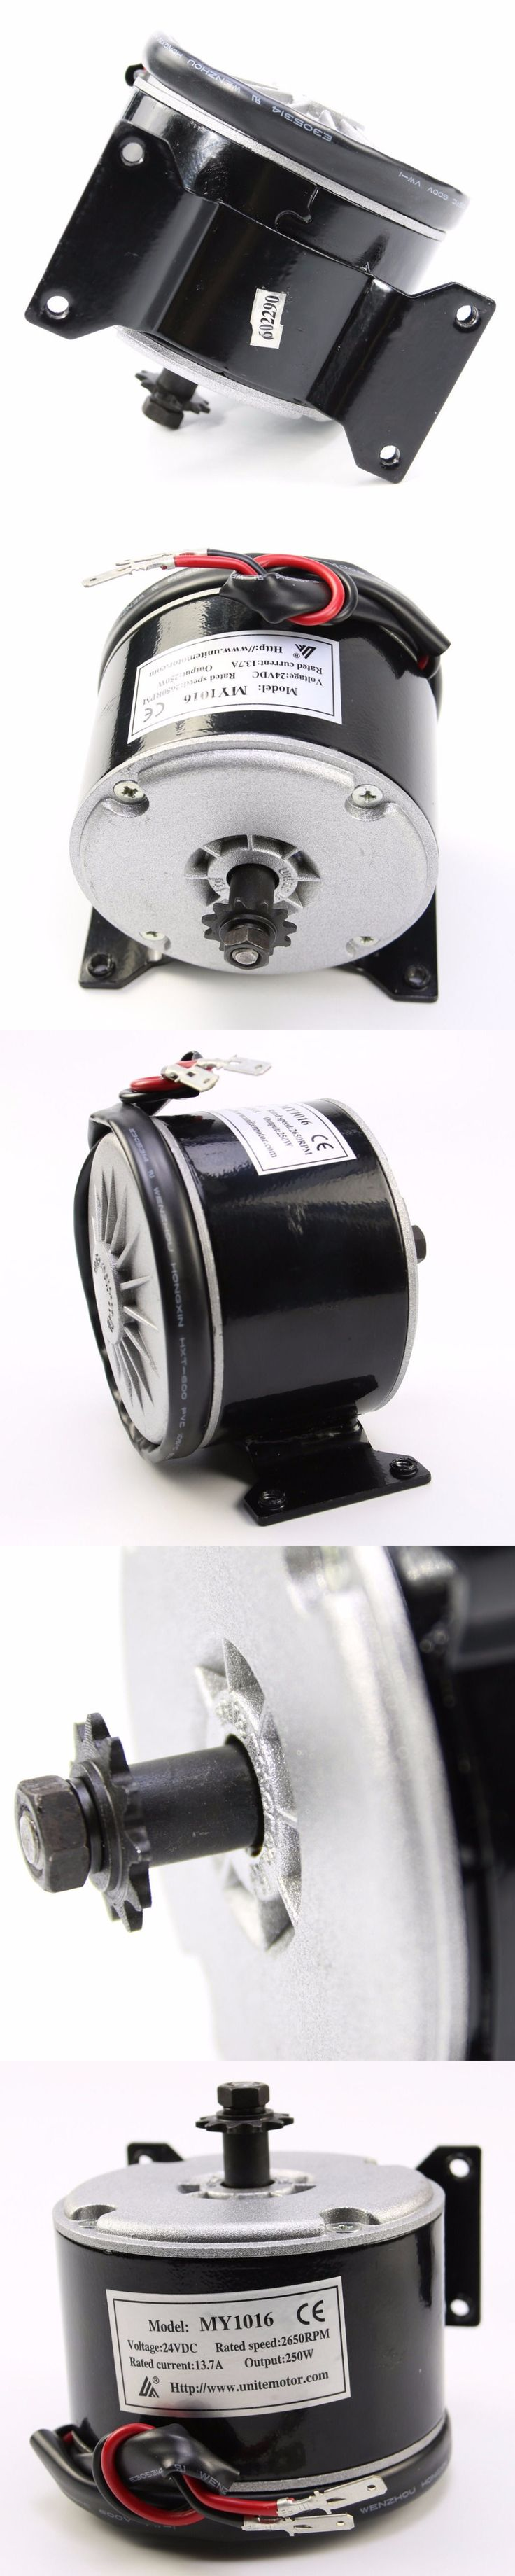 24V250W Electric Motor 2750rpm 11T teeth 25H Chain Electric DC Motor E-SCOOTER MY1016